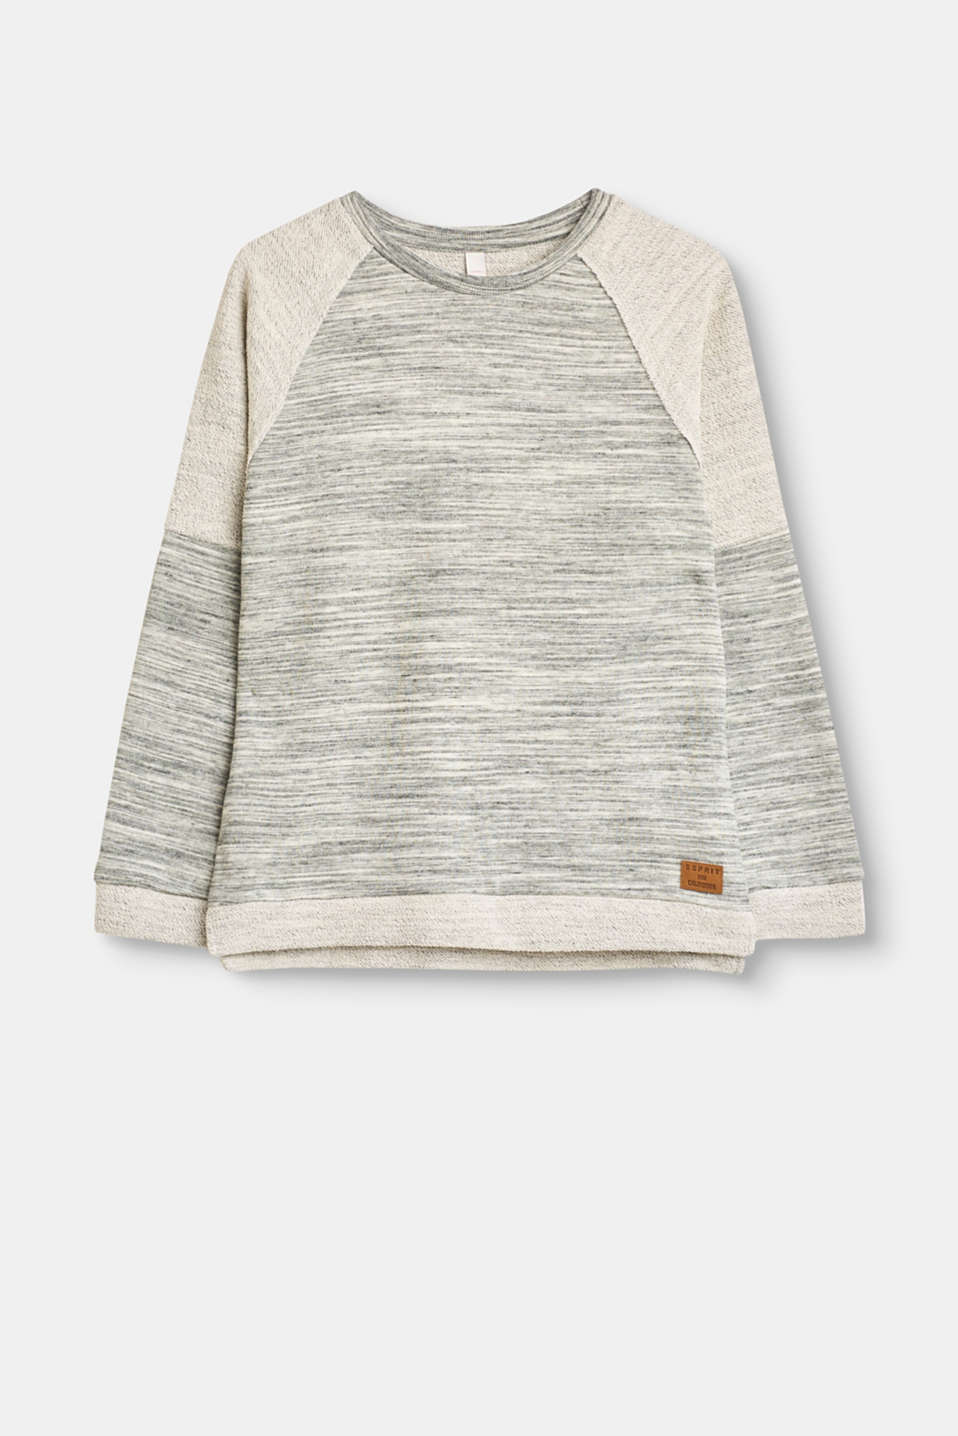 Esprit - Soft sweatshirt with two types of jersey